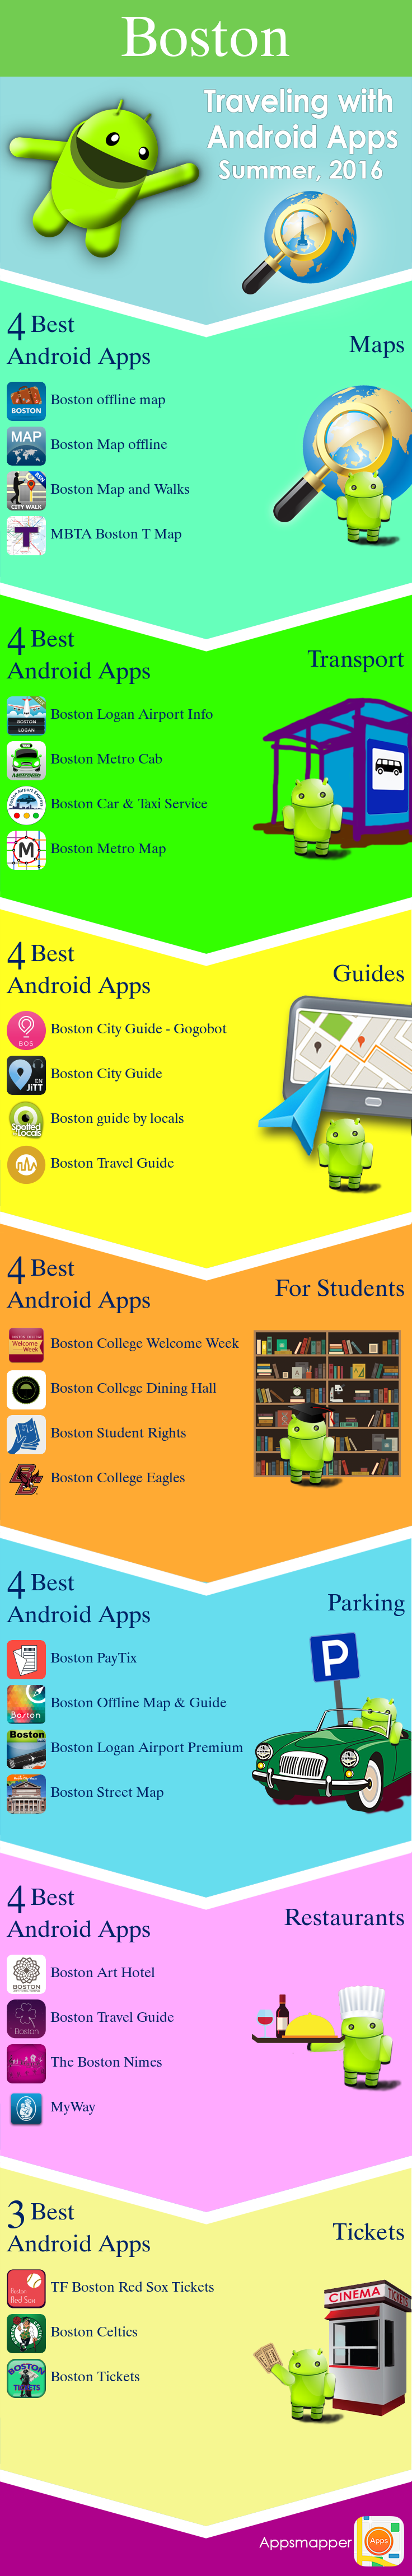 Boston Android apps Travel Guides, Maps, Transportation